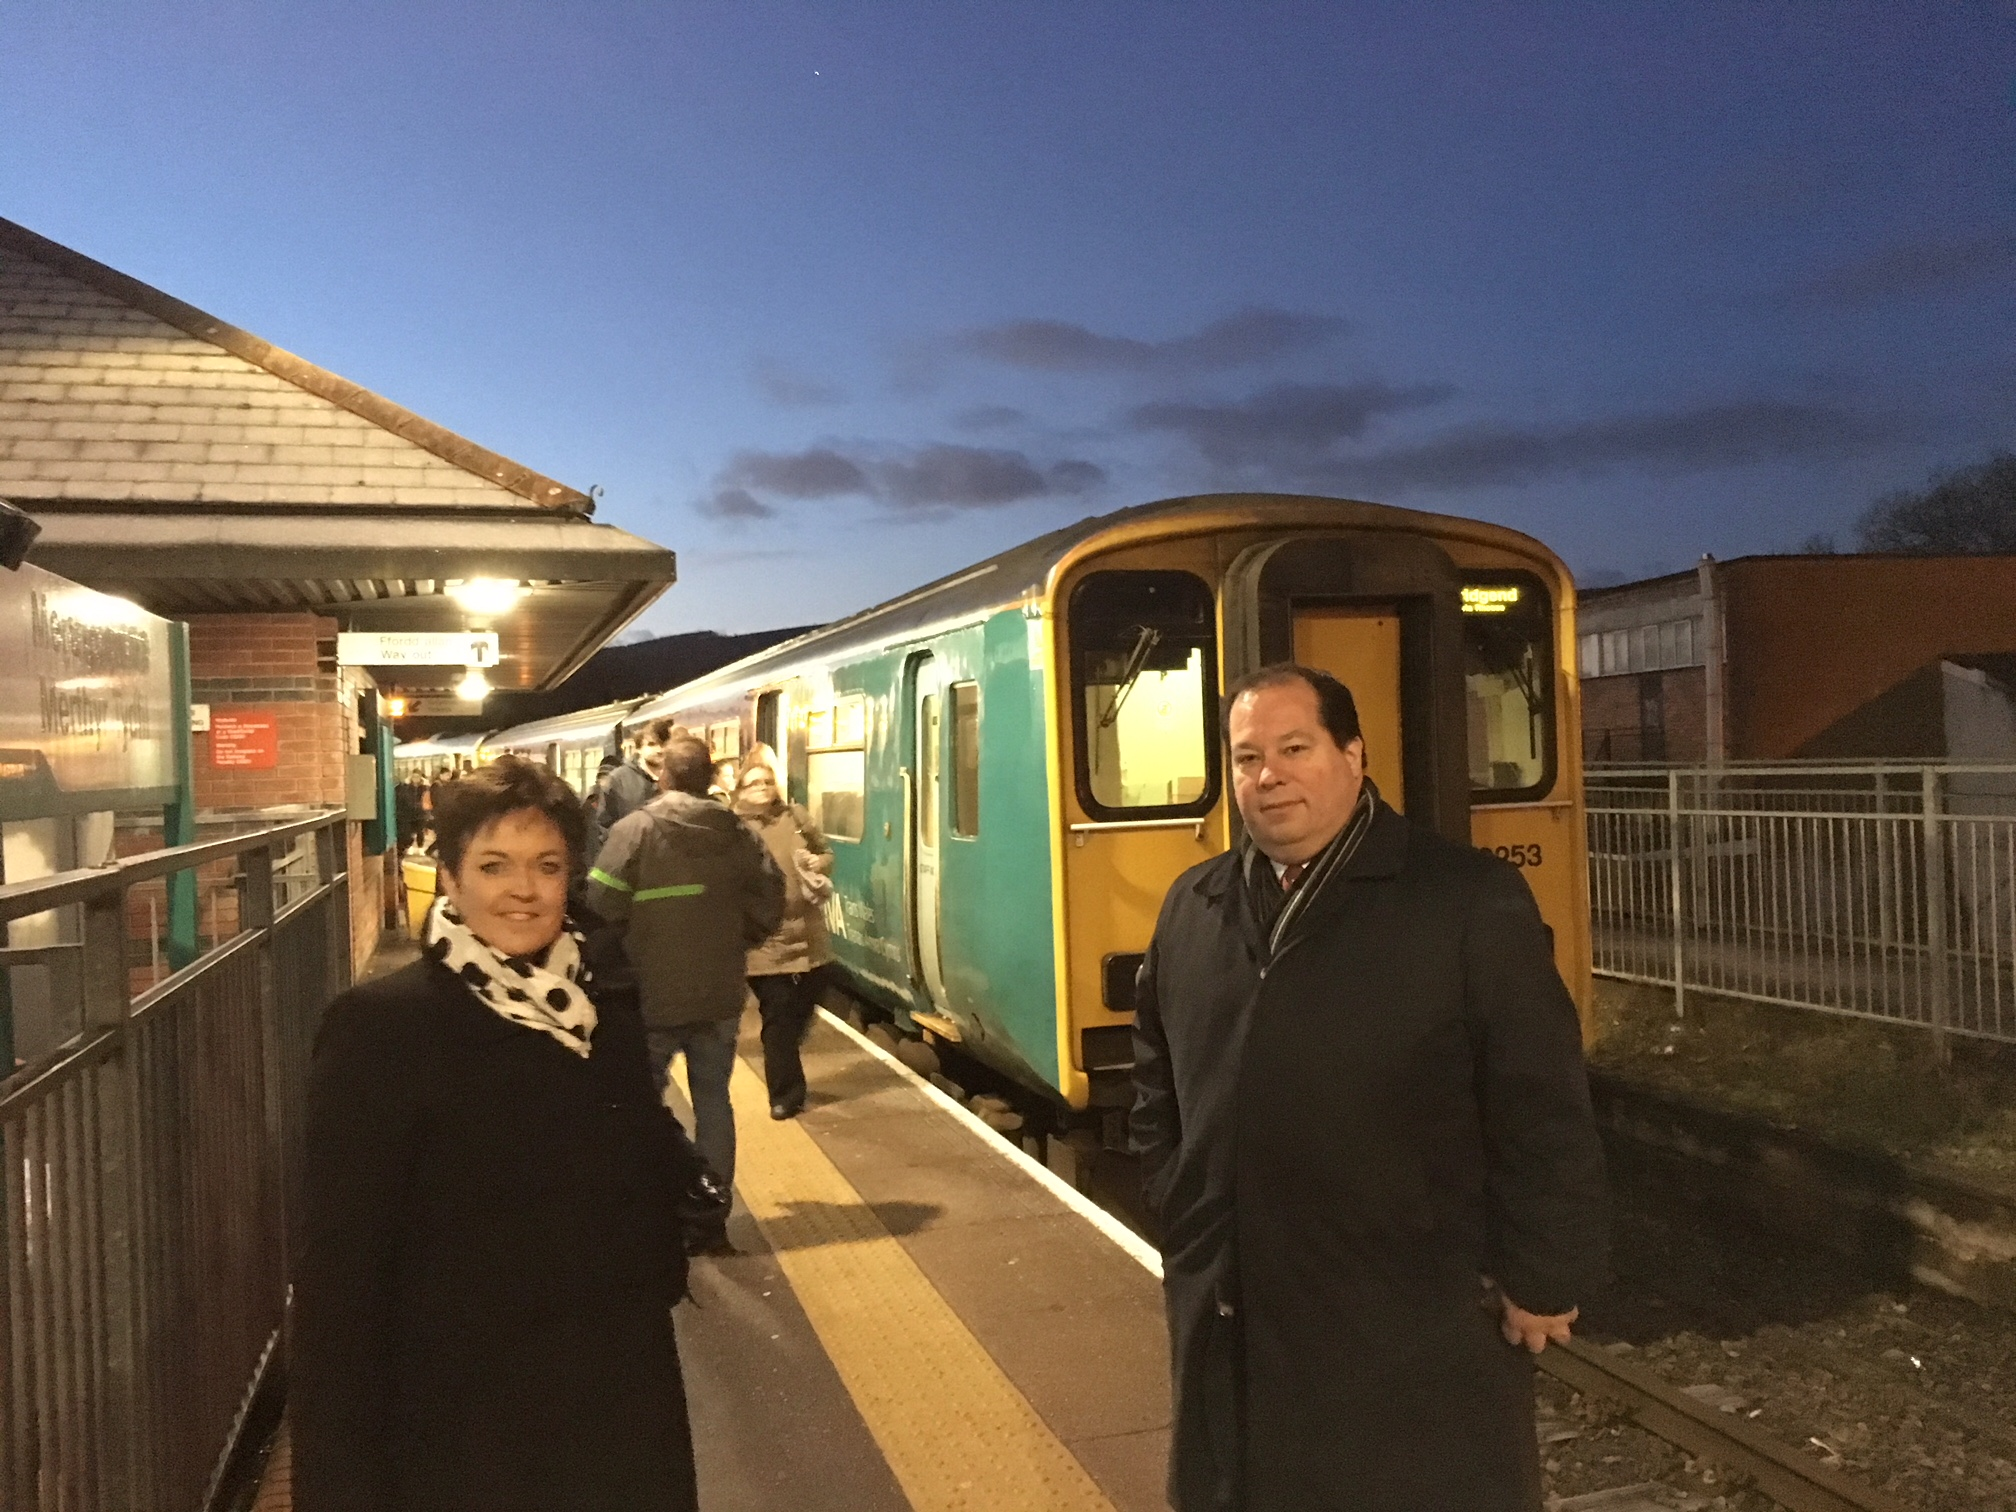 Dawn_and_Gerald_at_train_station.jpg